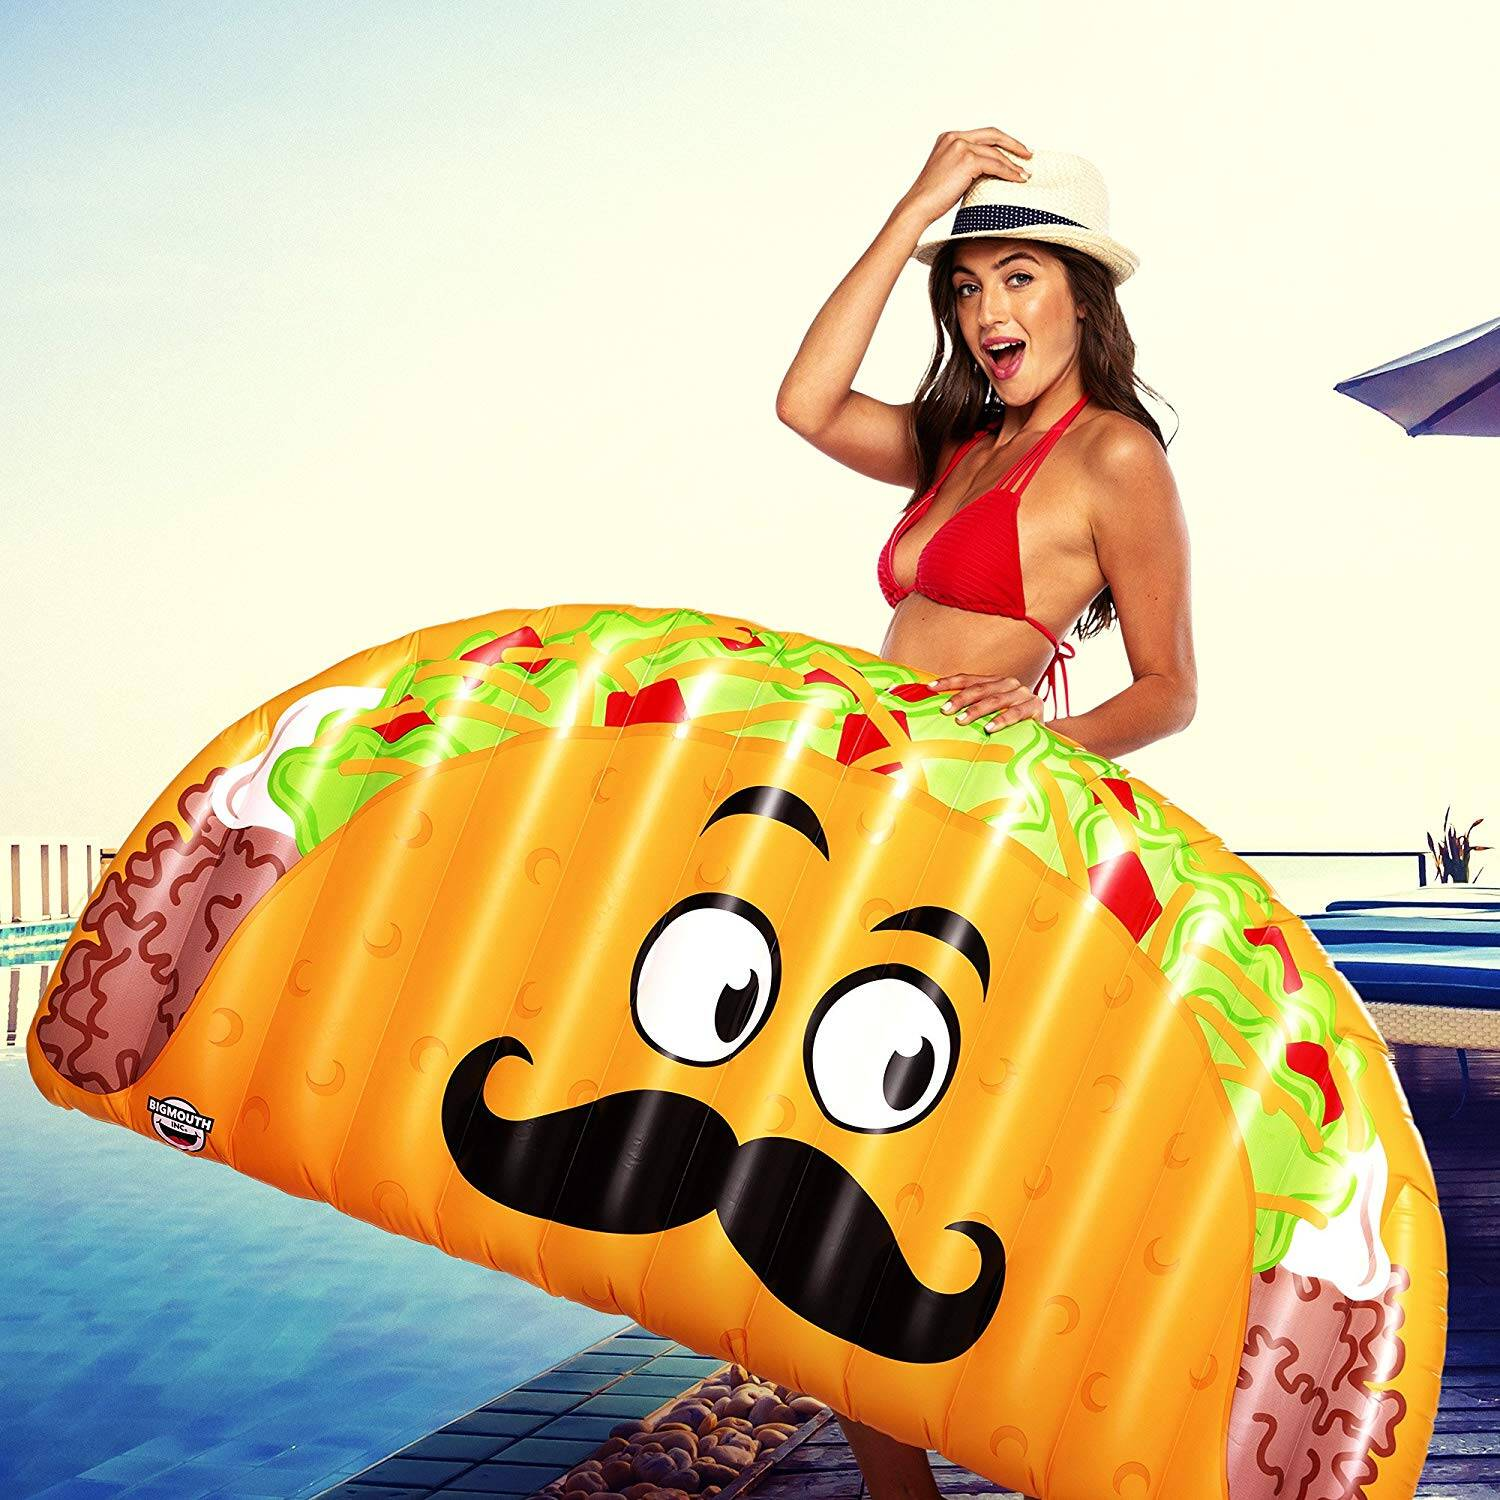 Giant Taco Pool Float - http://coolthings.us